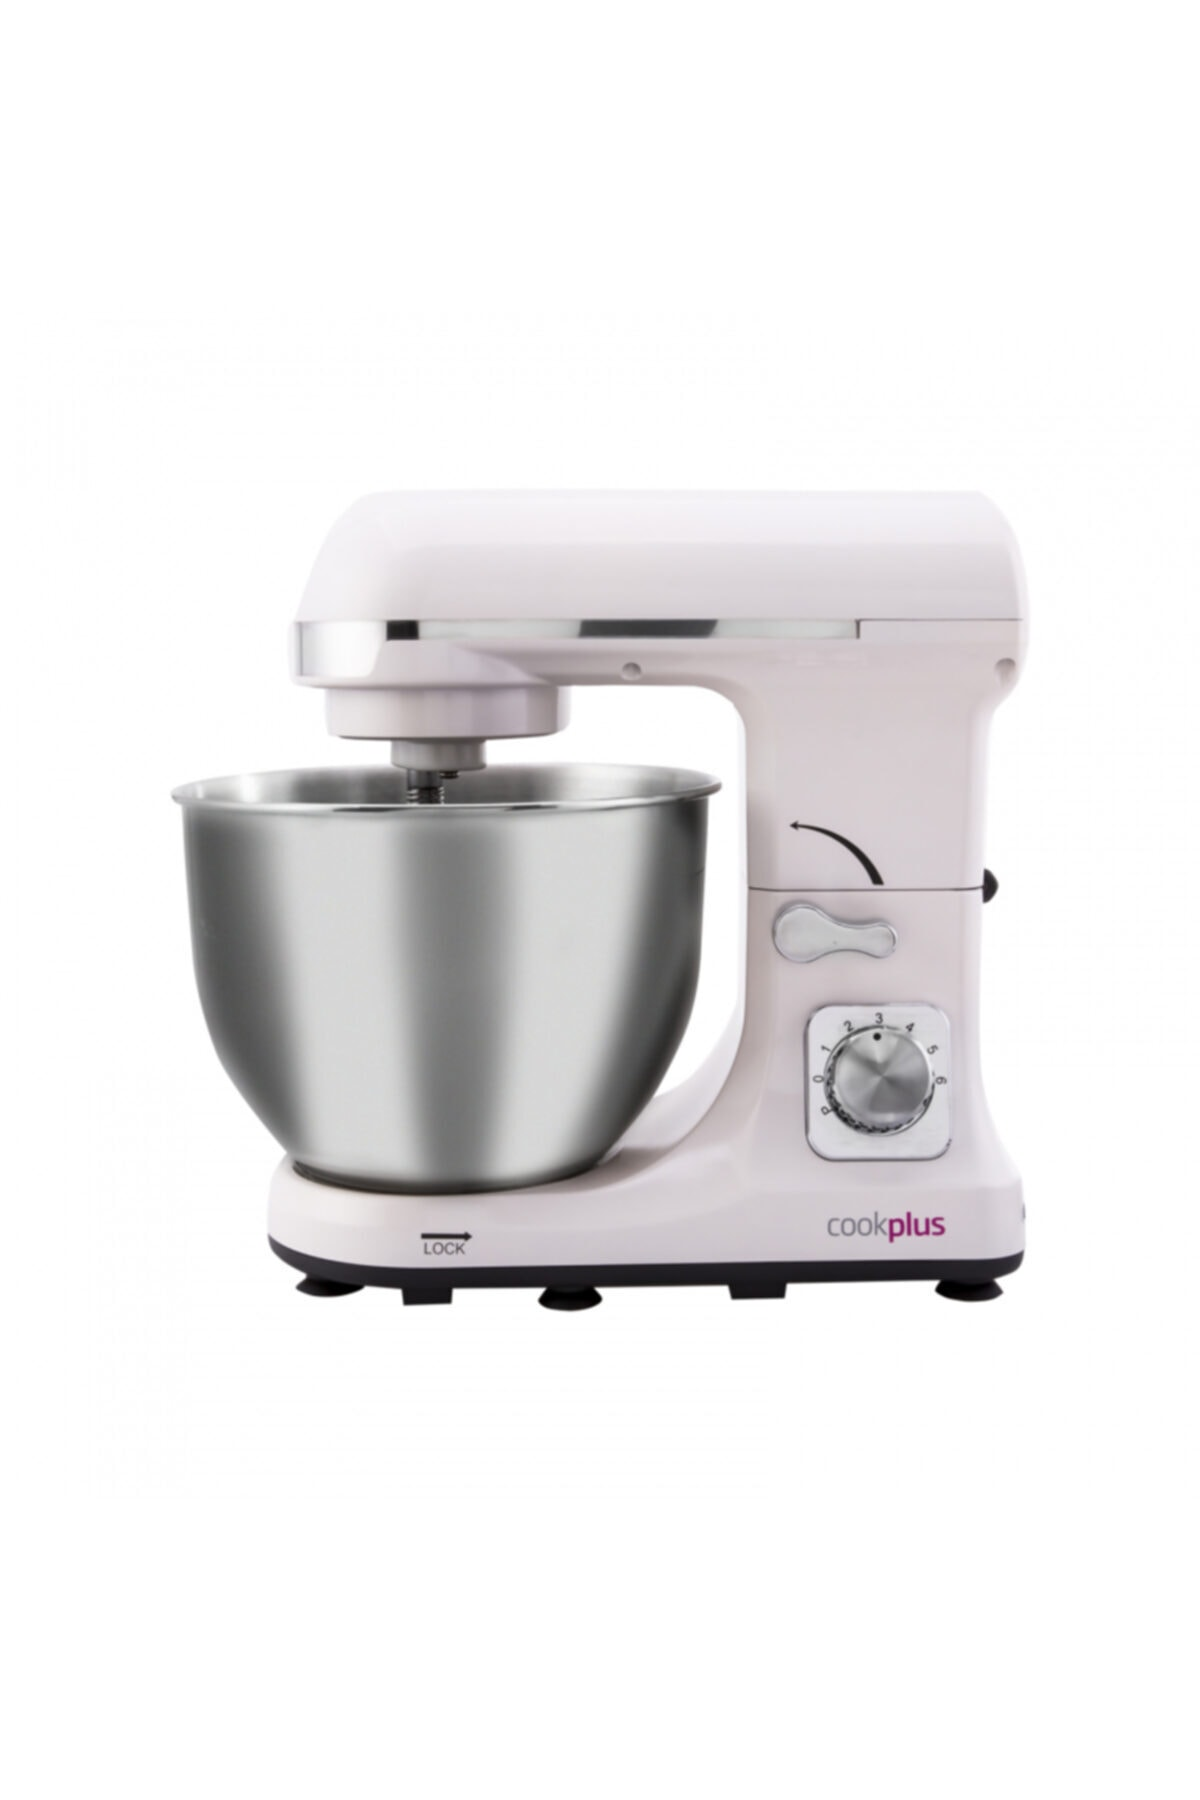 Cookplus Quick Chef 1001 Mutfak Robotu Cream 1